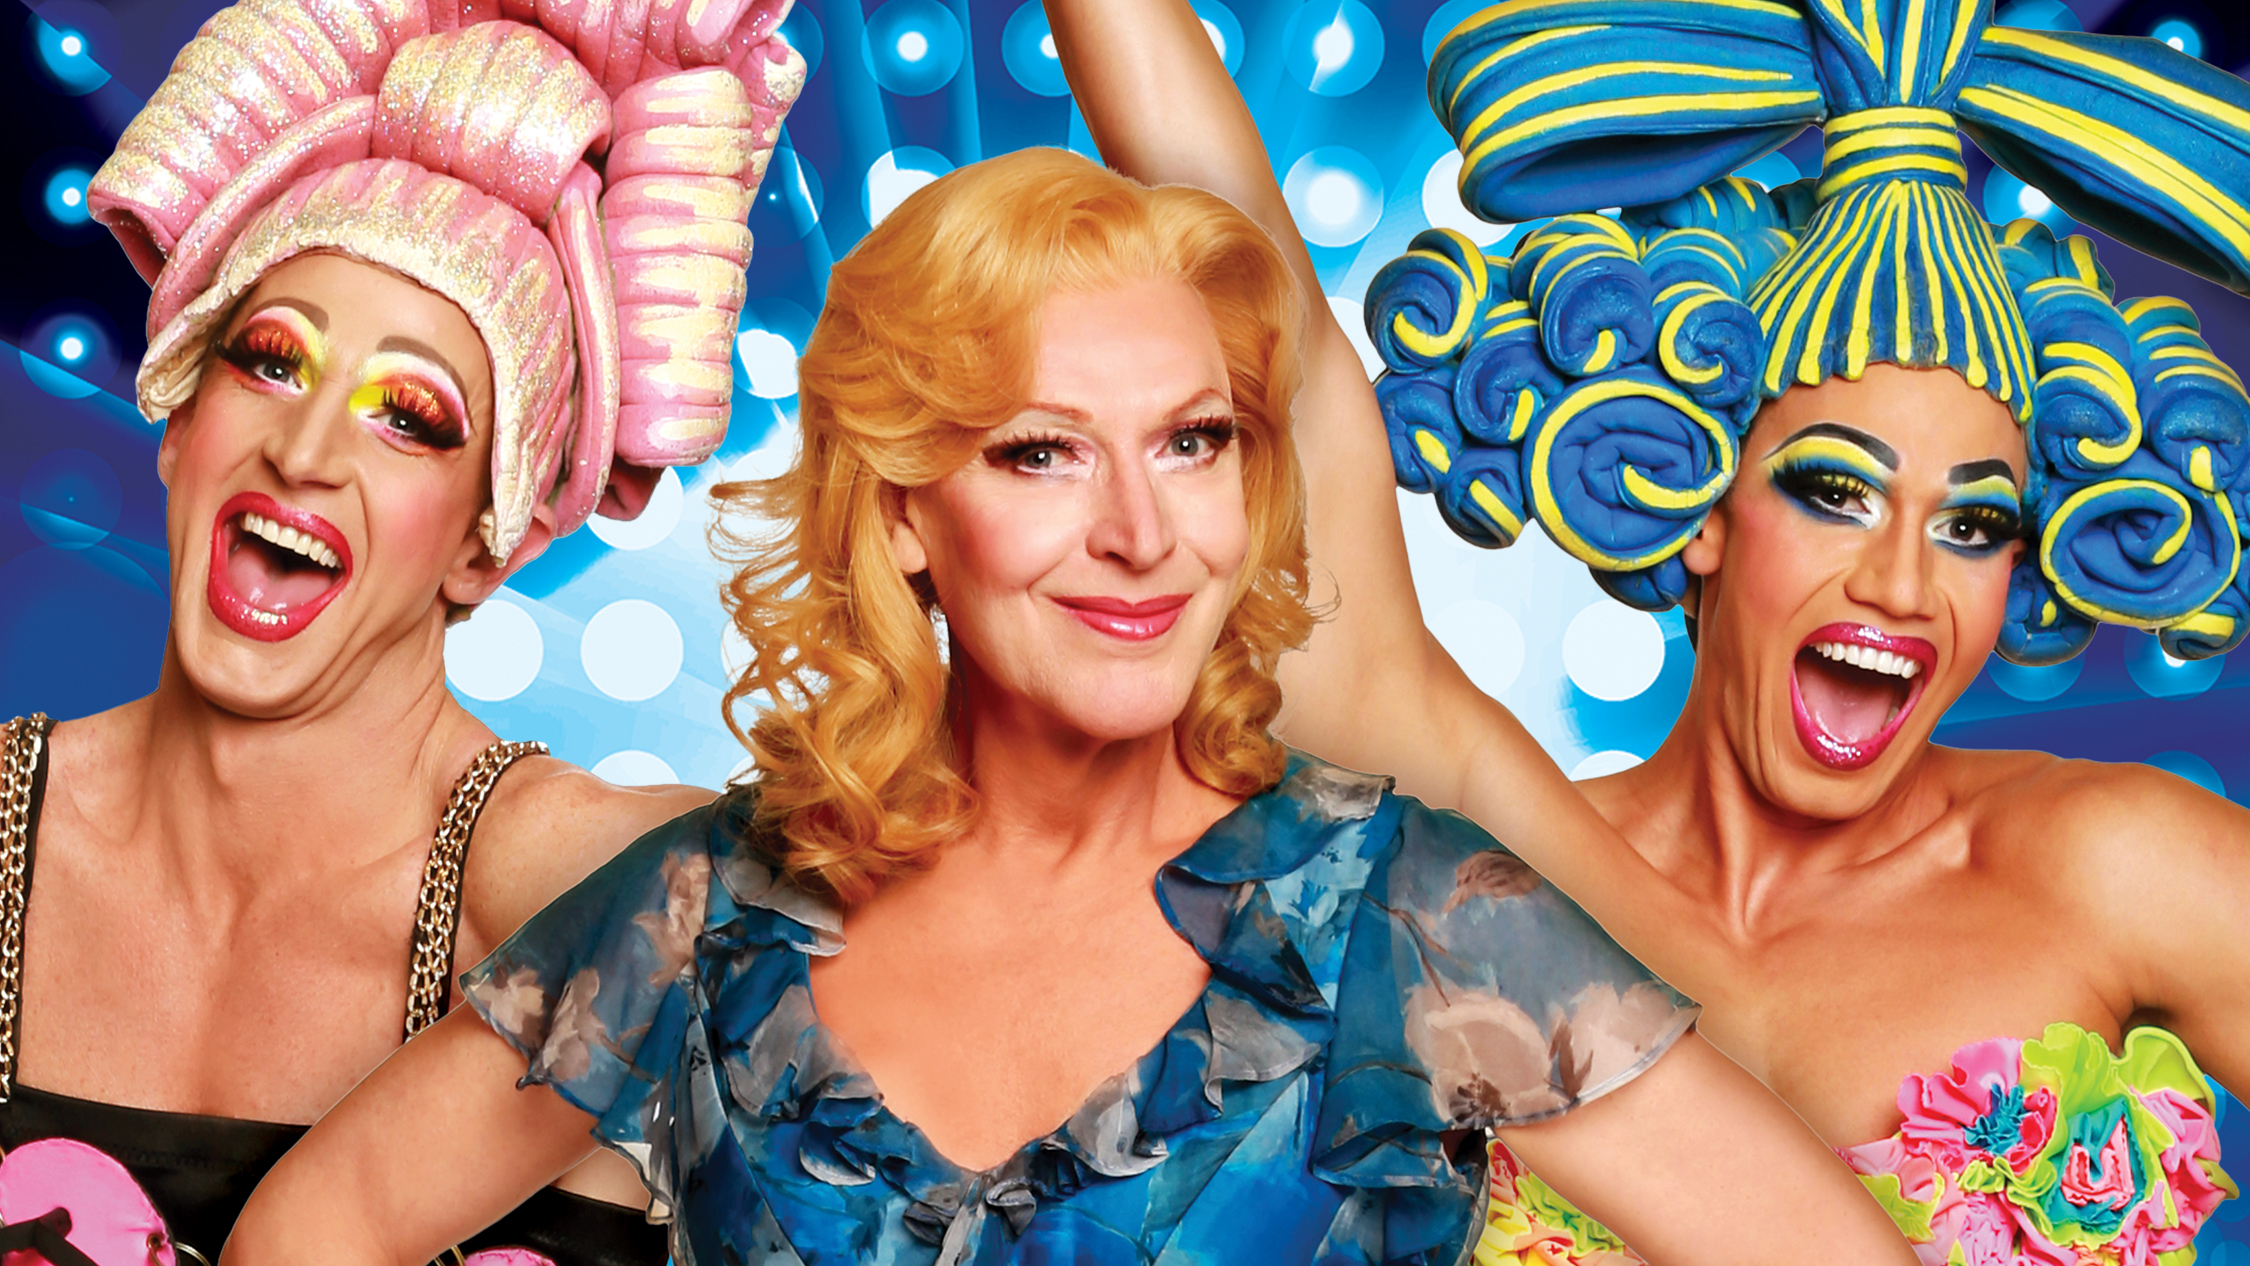 Get on board the bus – Priscilla is leaving soon